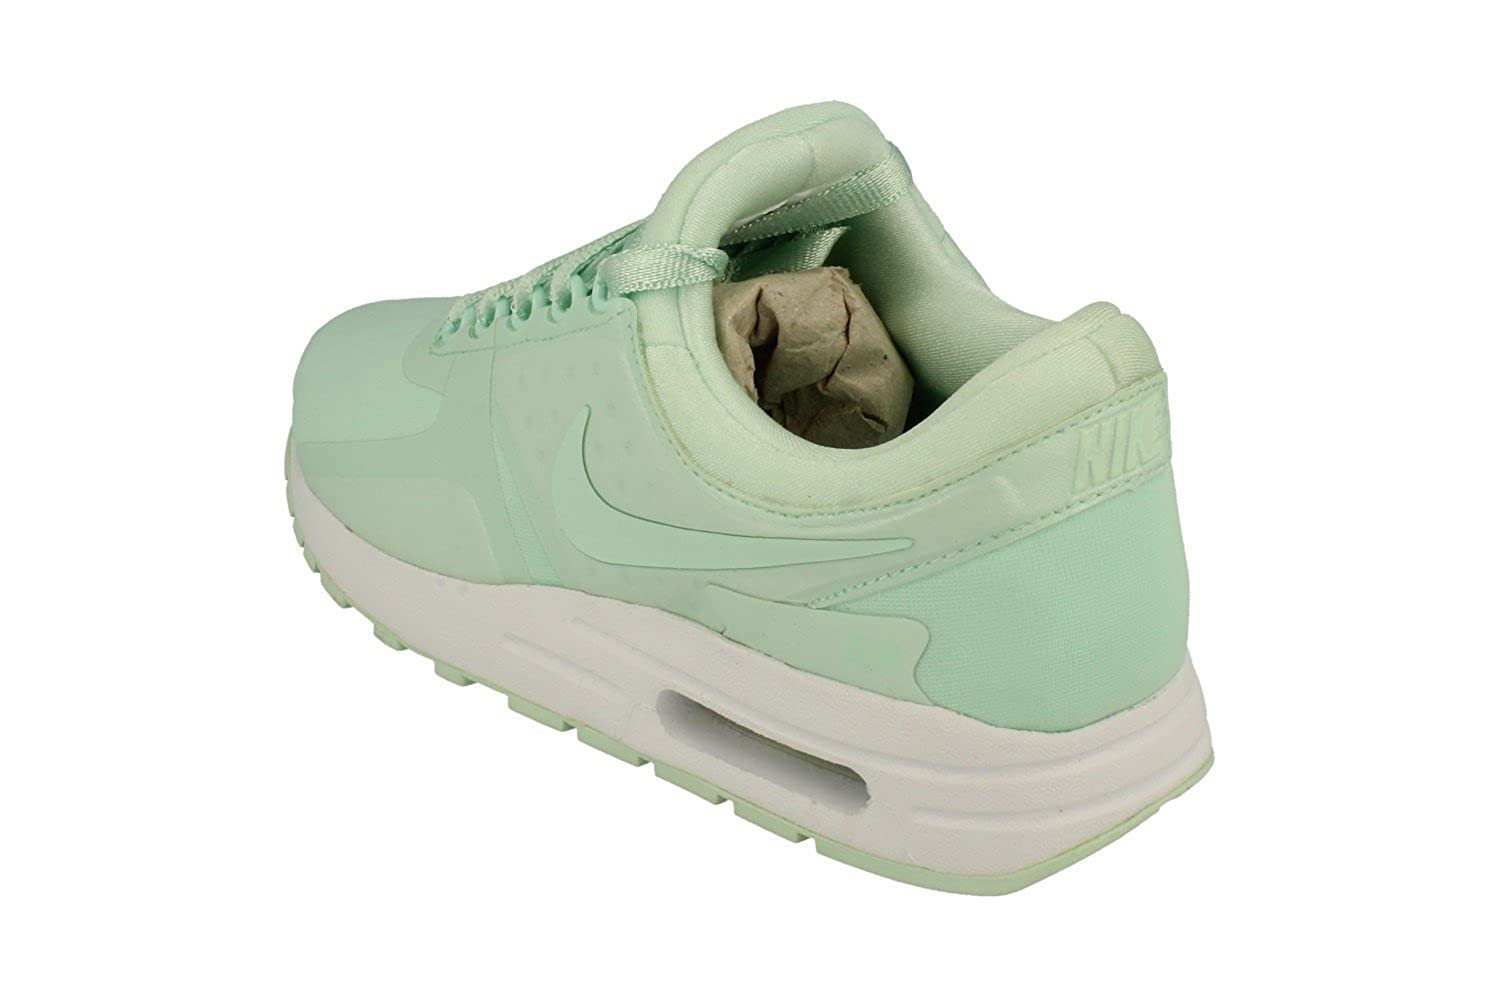 new concept 55c4e a07a5 Nike Air Max Zero Se GS Running Trainers 917863 Sneakers Shoes (UK 5.5 us  6Y EU 38.5, Igloo White 300)  Amazon.in  Shoes   Handbags